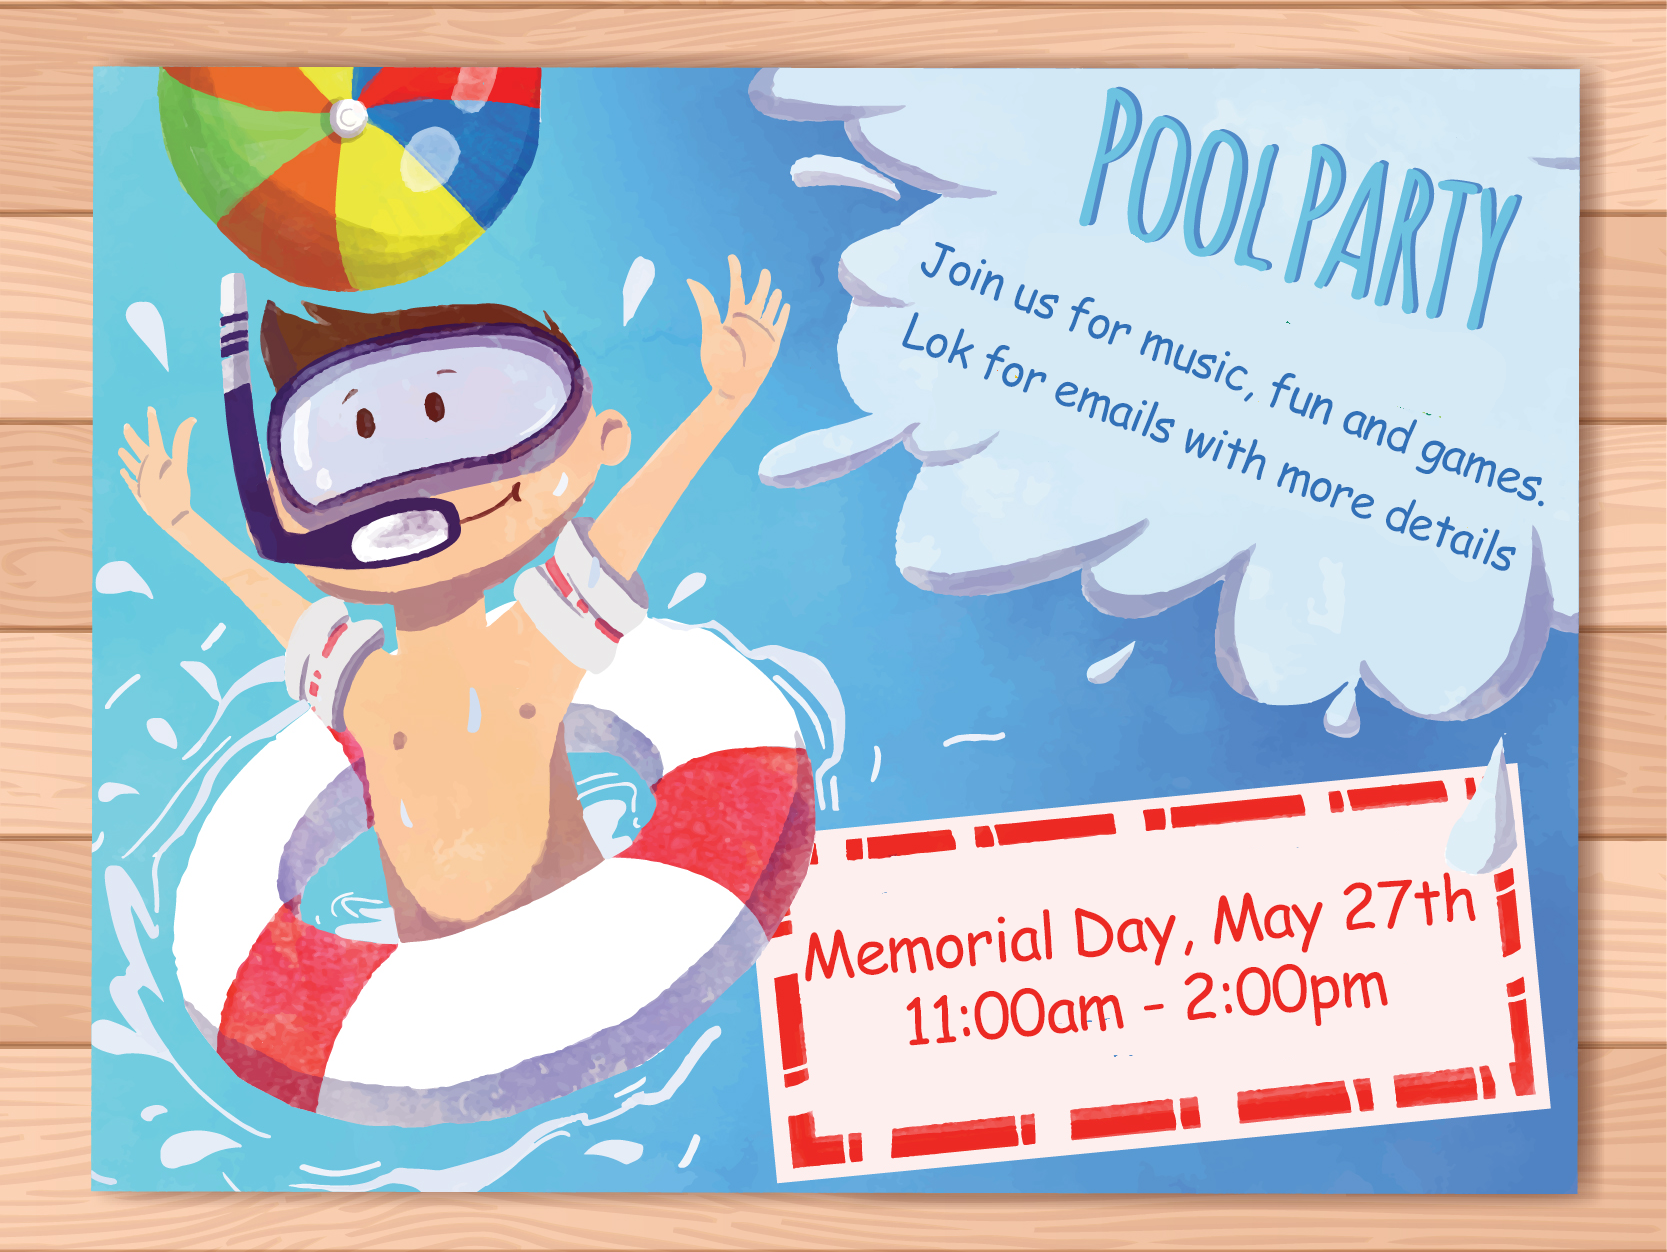 Memorial Day Pool Party May 27th